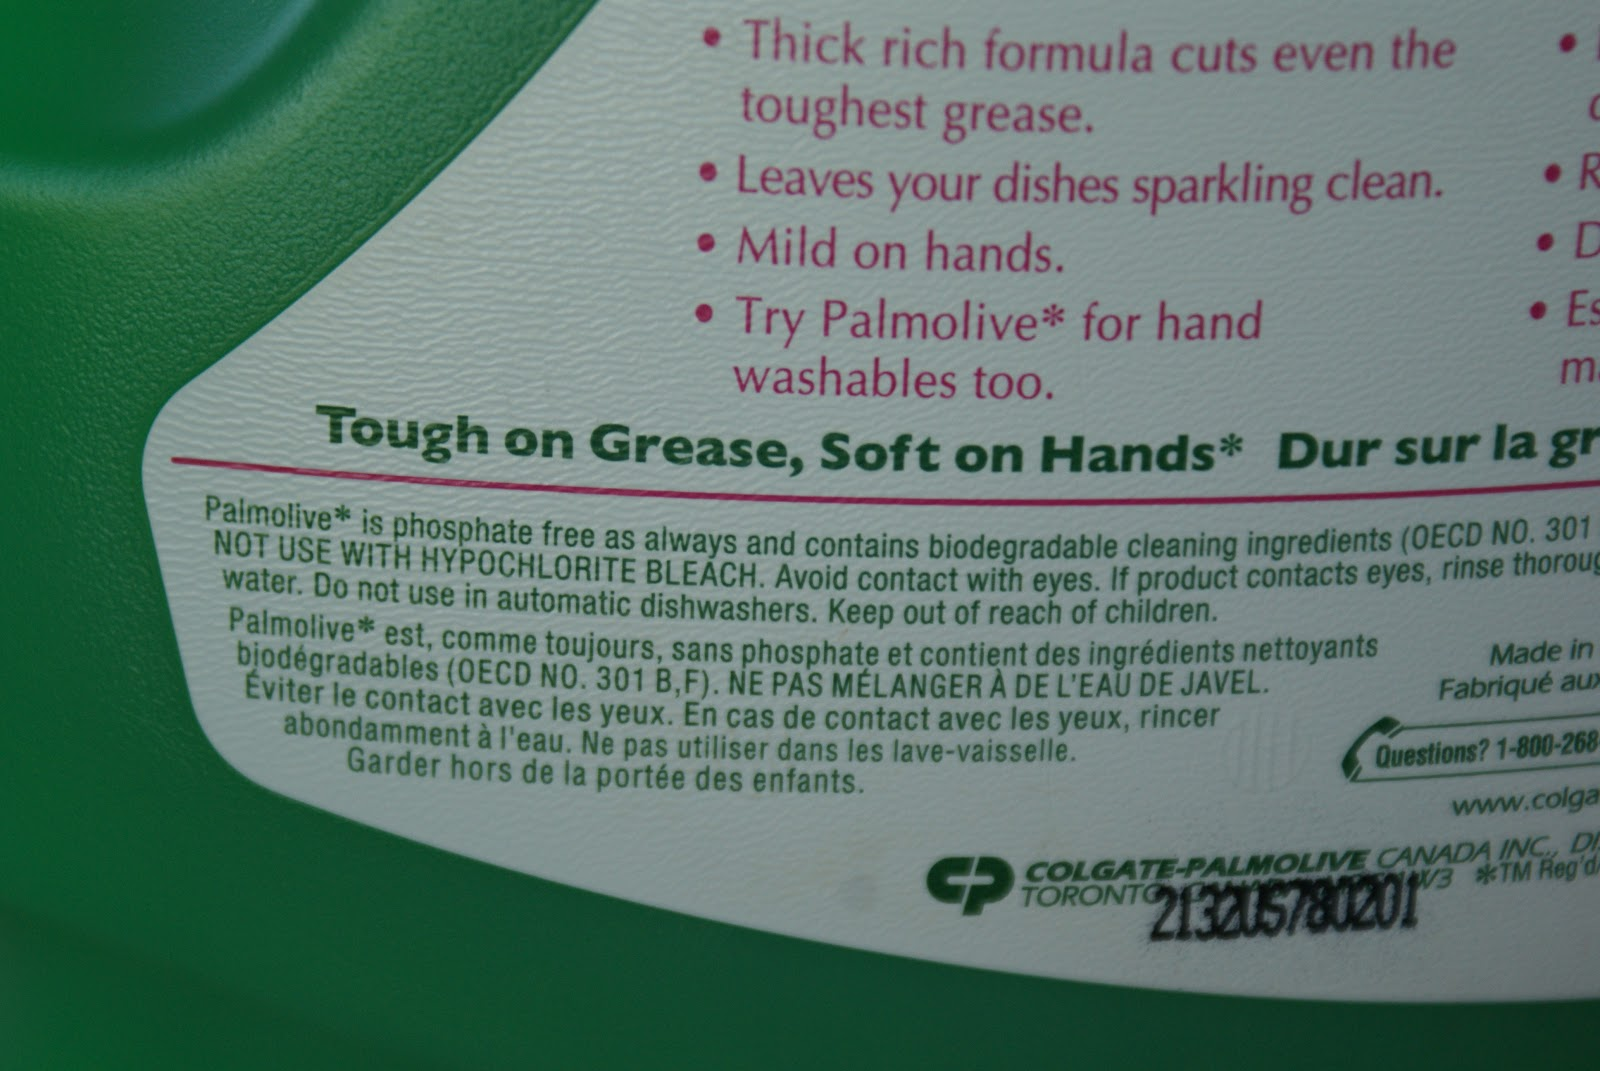 What are the ingredients of Palmolive dish soap?